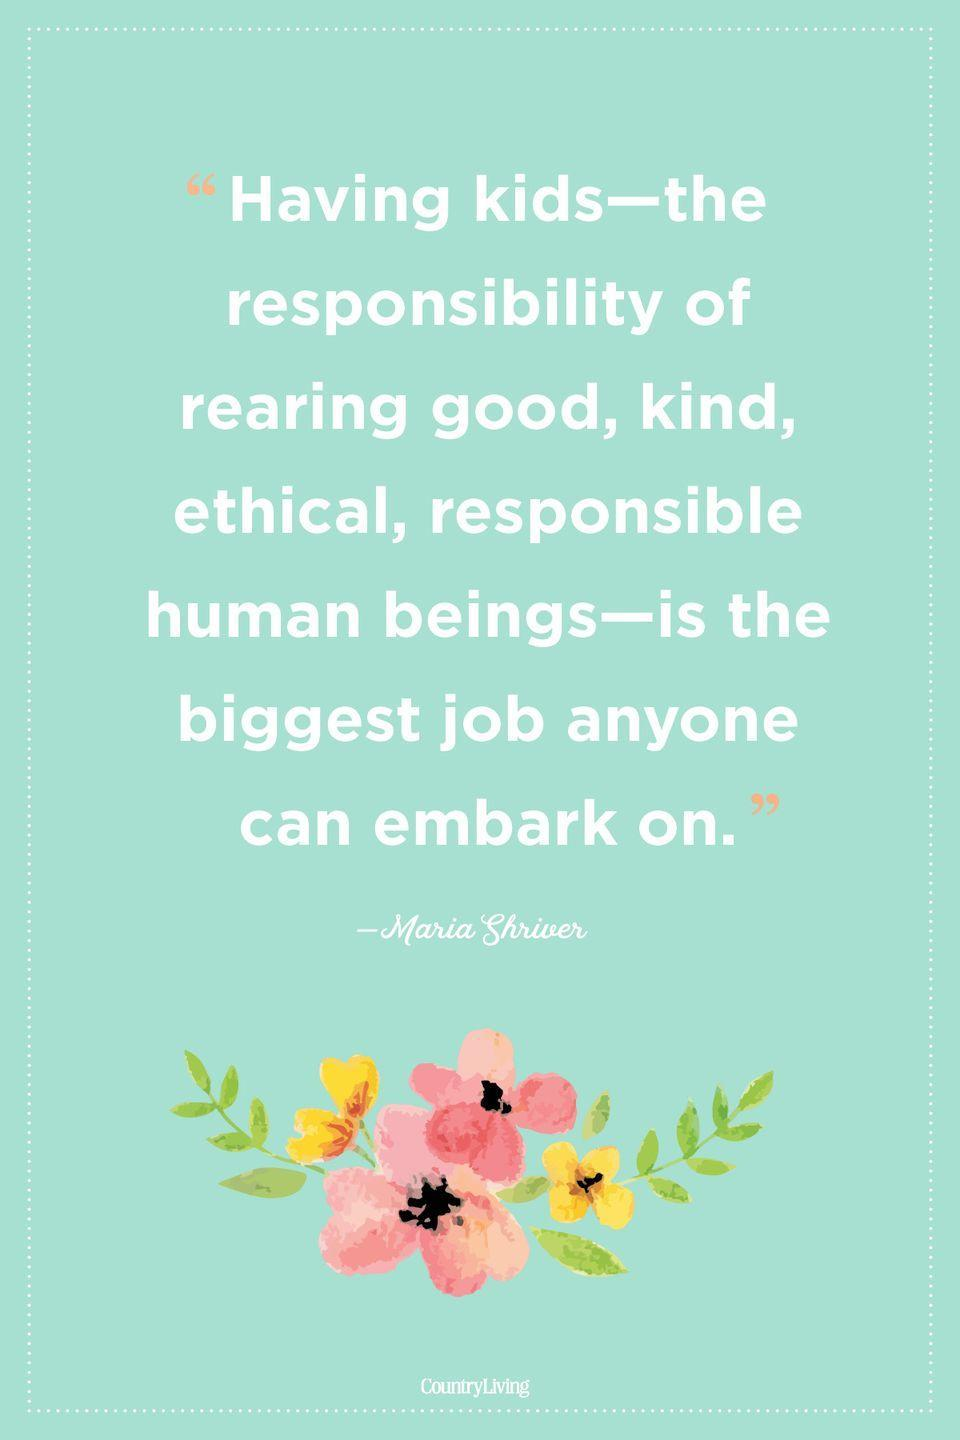 "<p>""Having kids—the responsibility of rearing good, kind, ethical, responsible human beings—is the biggest job anyone can embark on.""</p>"